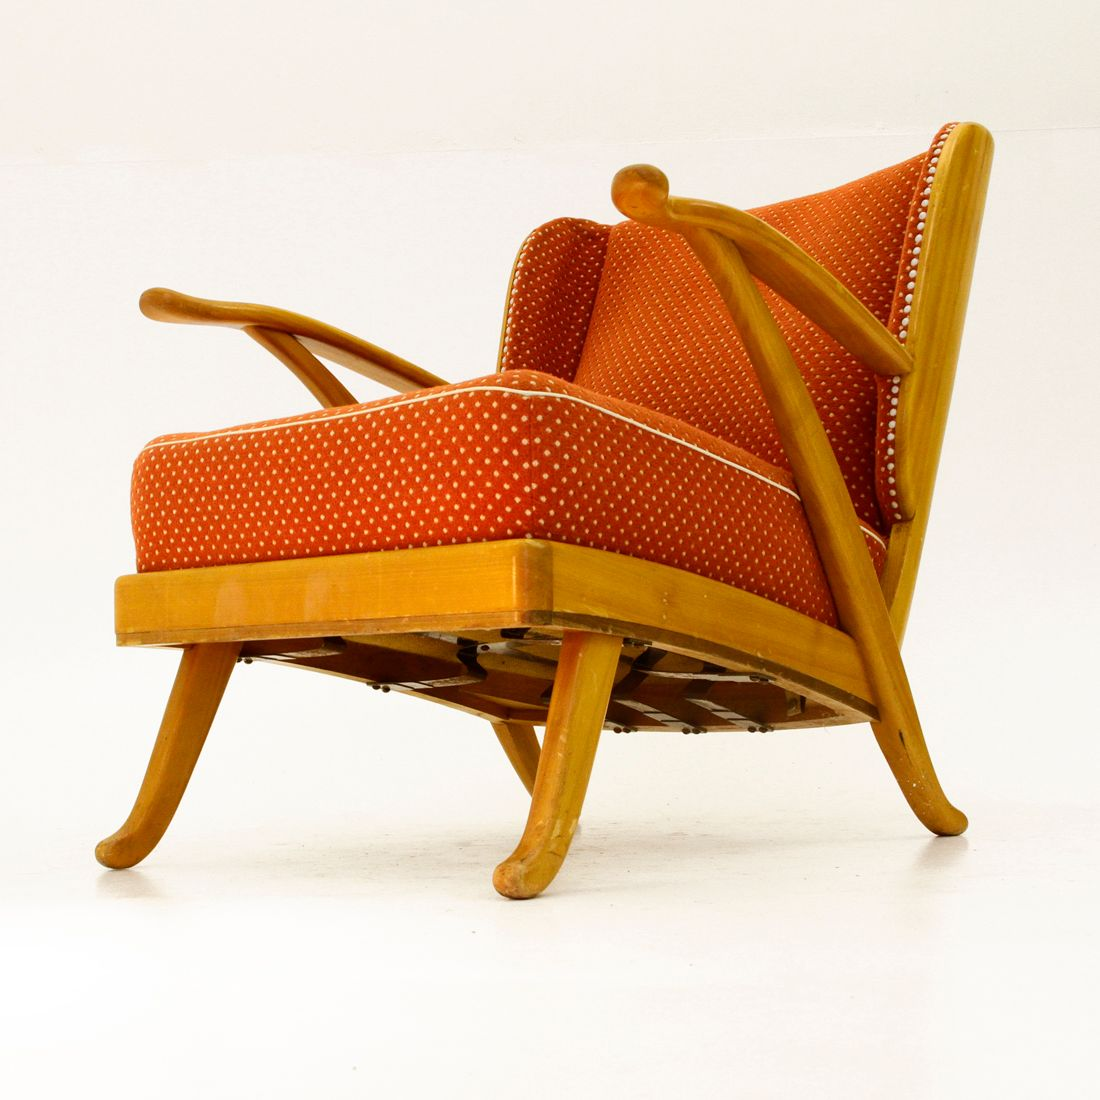 Vintage Italian Wooden Lounge Chair for sale at Pamono